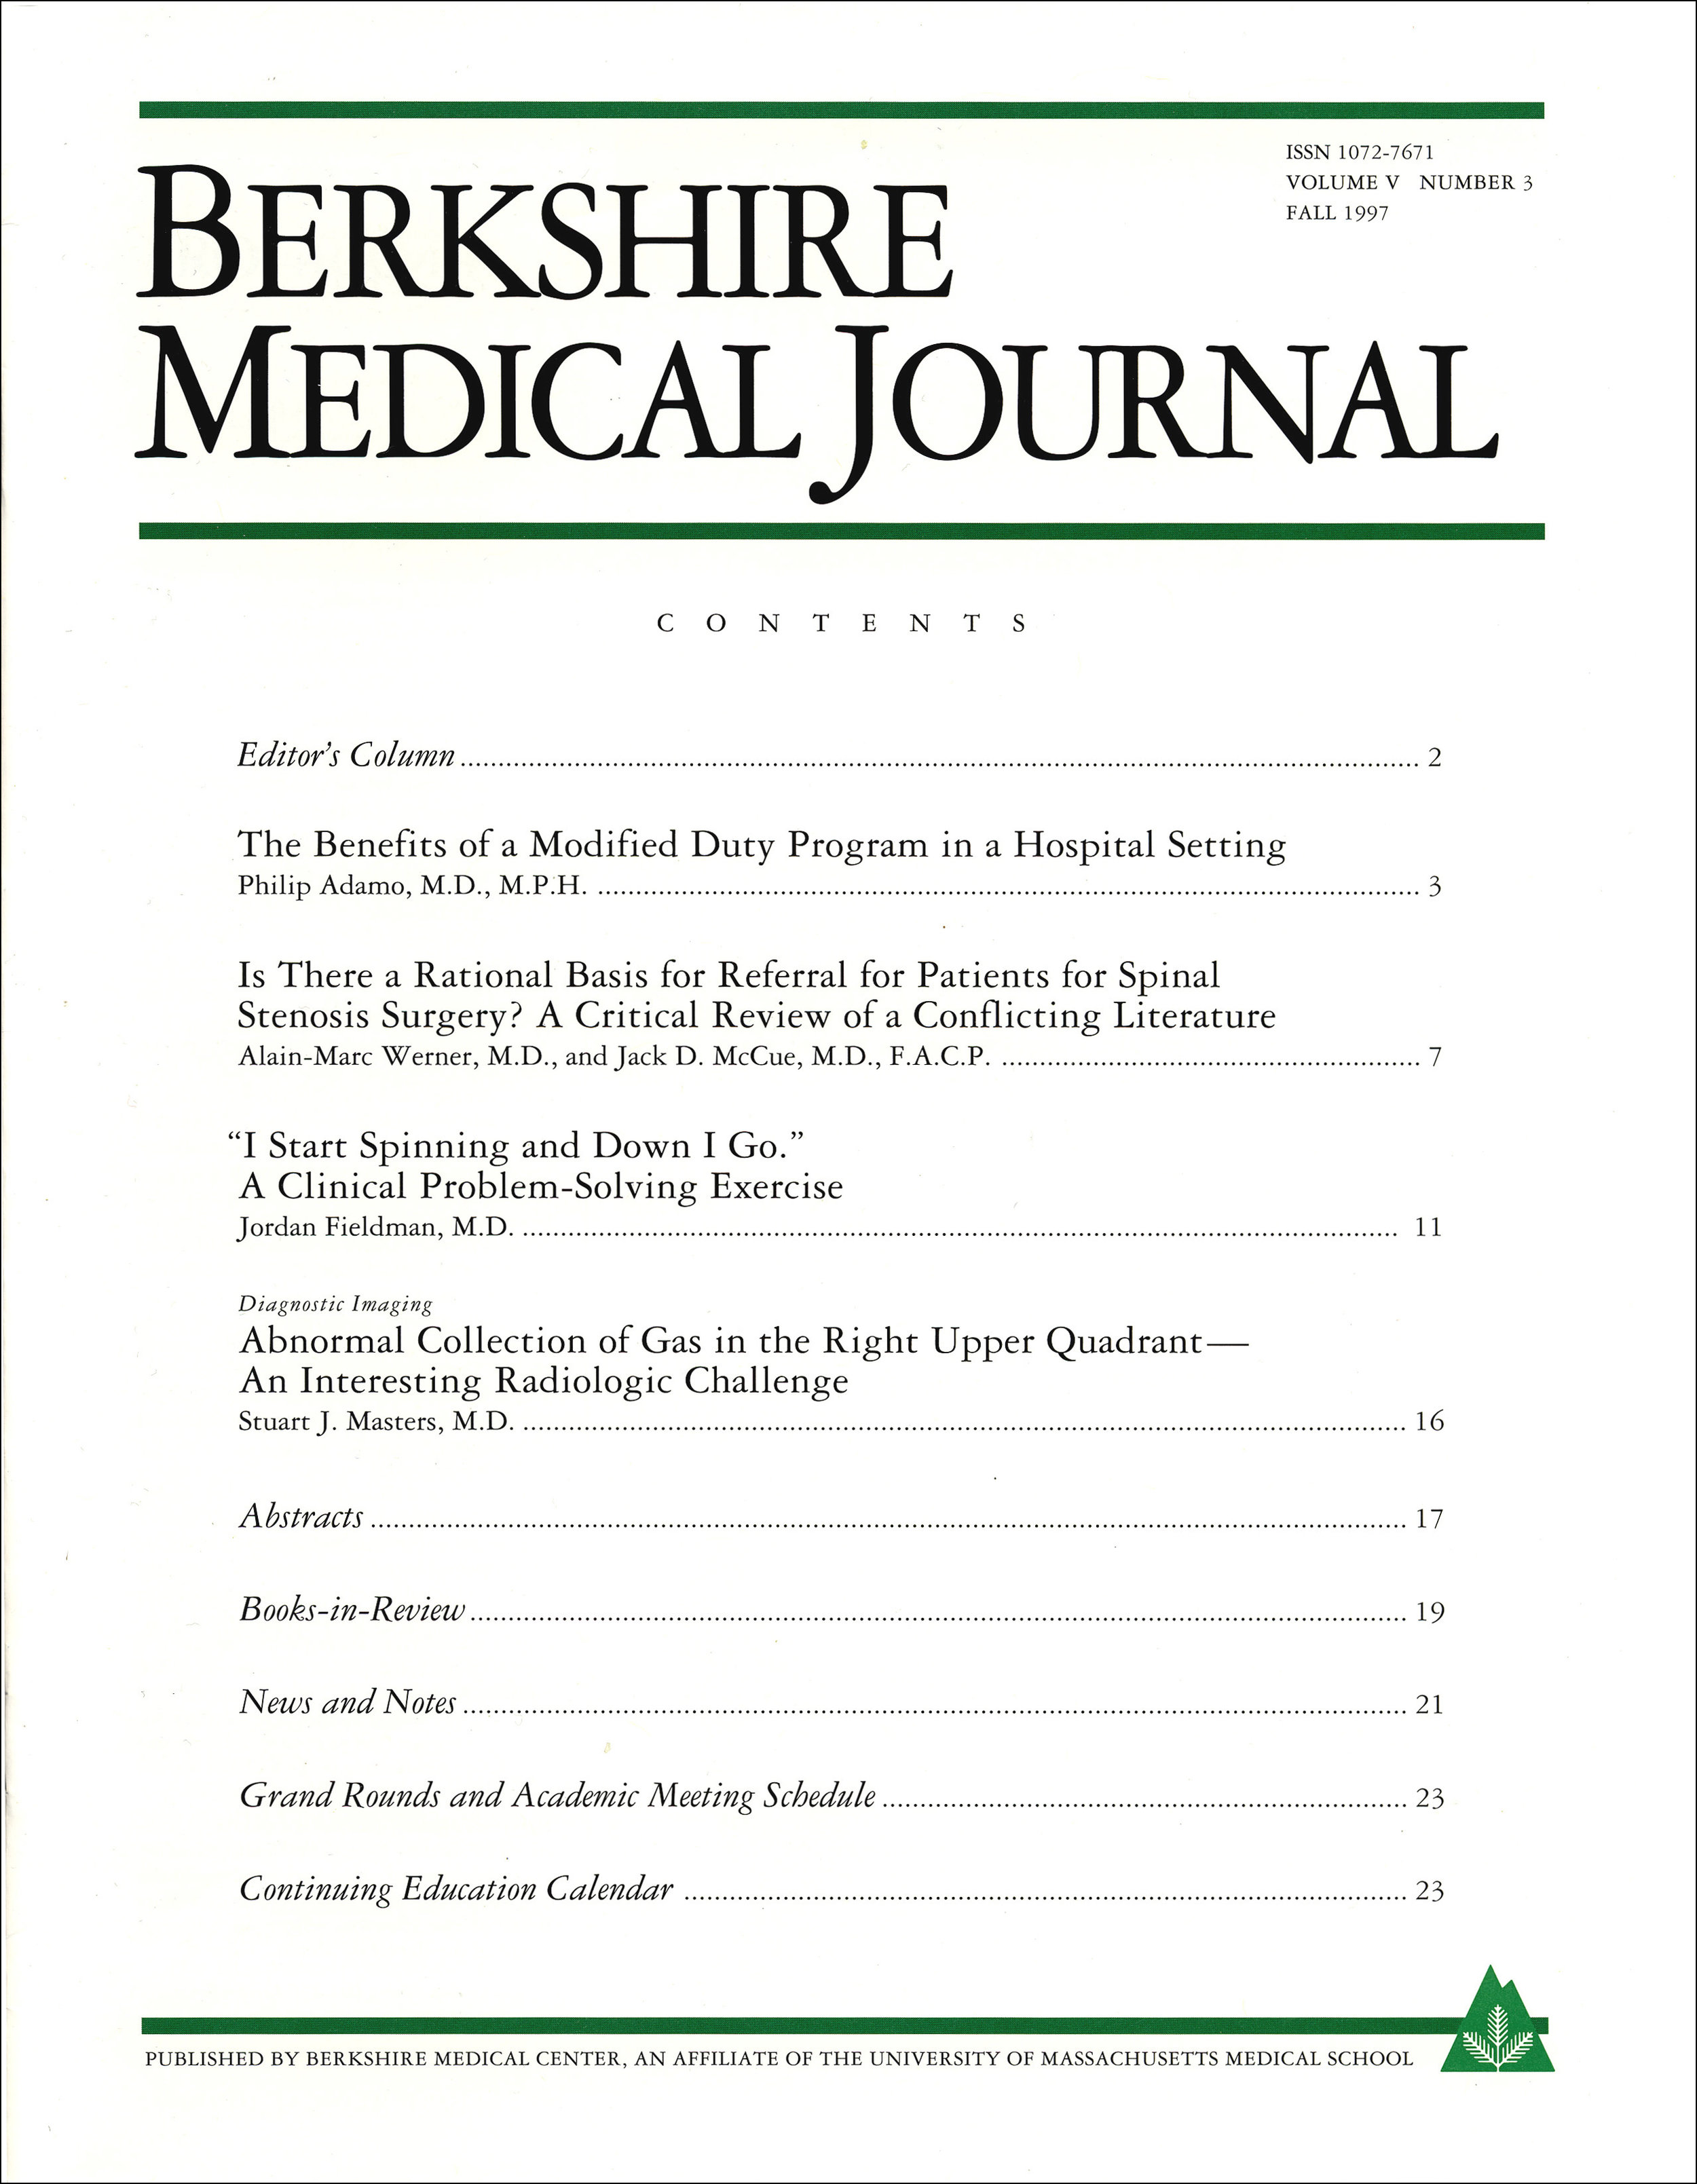 Berkshire Medical Journal